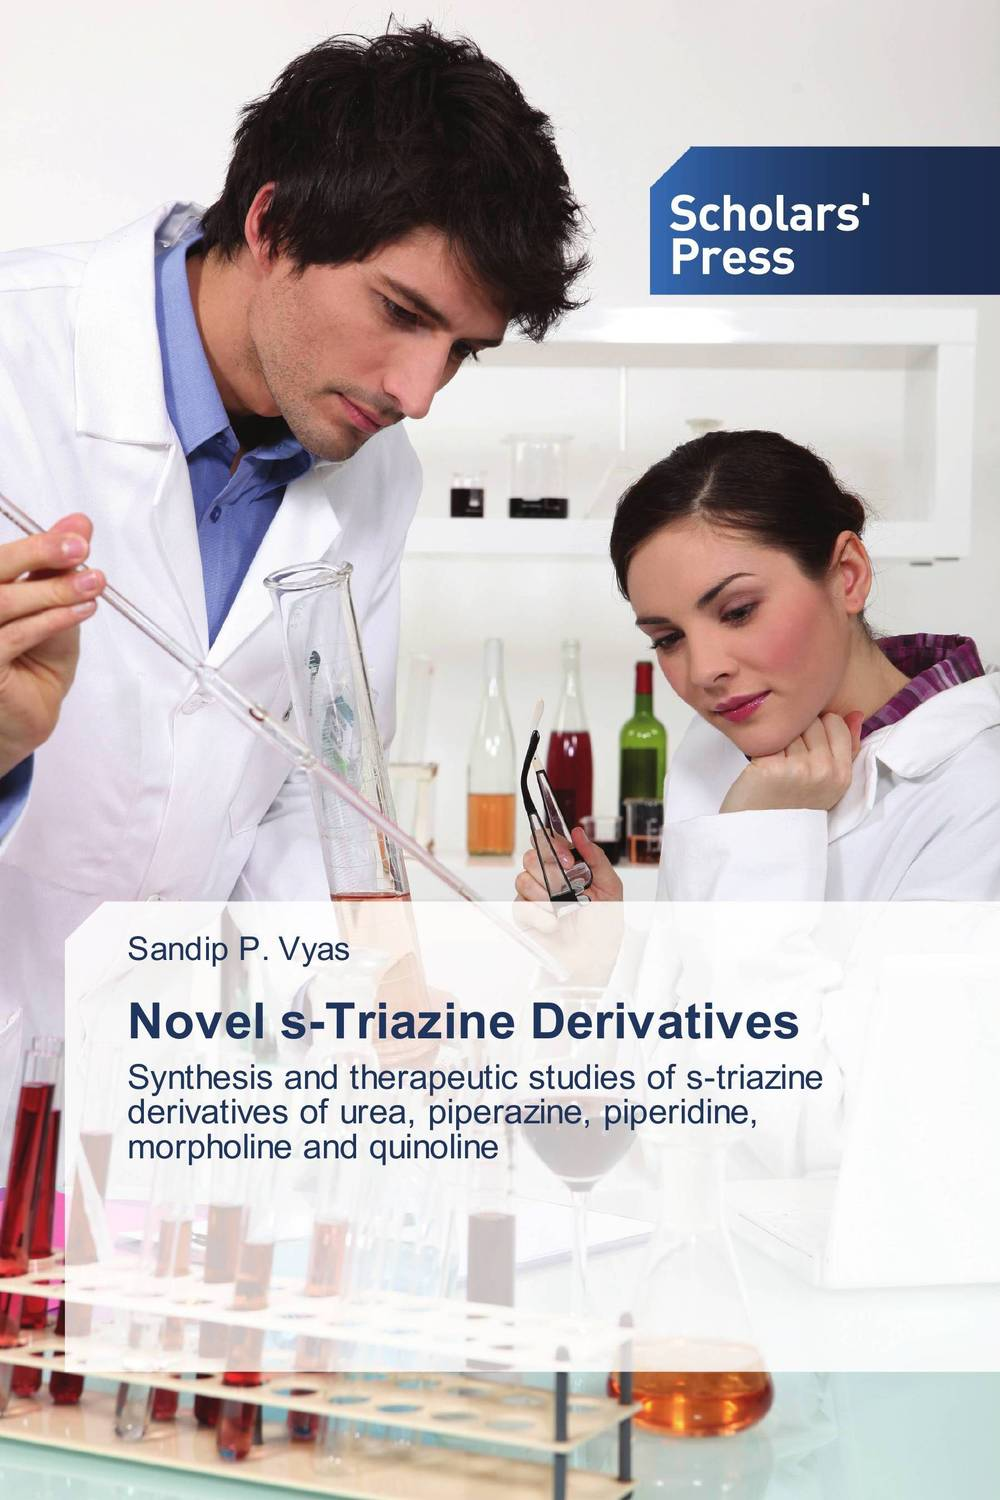 Novel s-Triazine Derivatives sandip p vyas novel s triazine derivatives